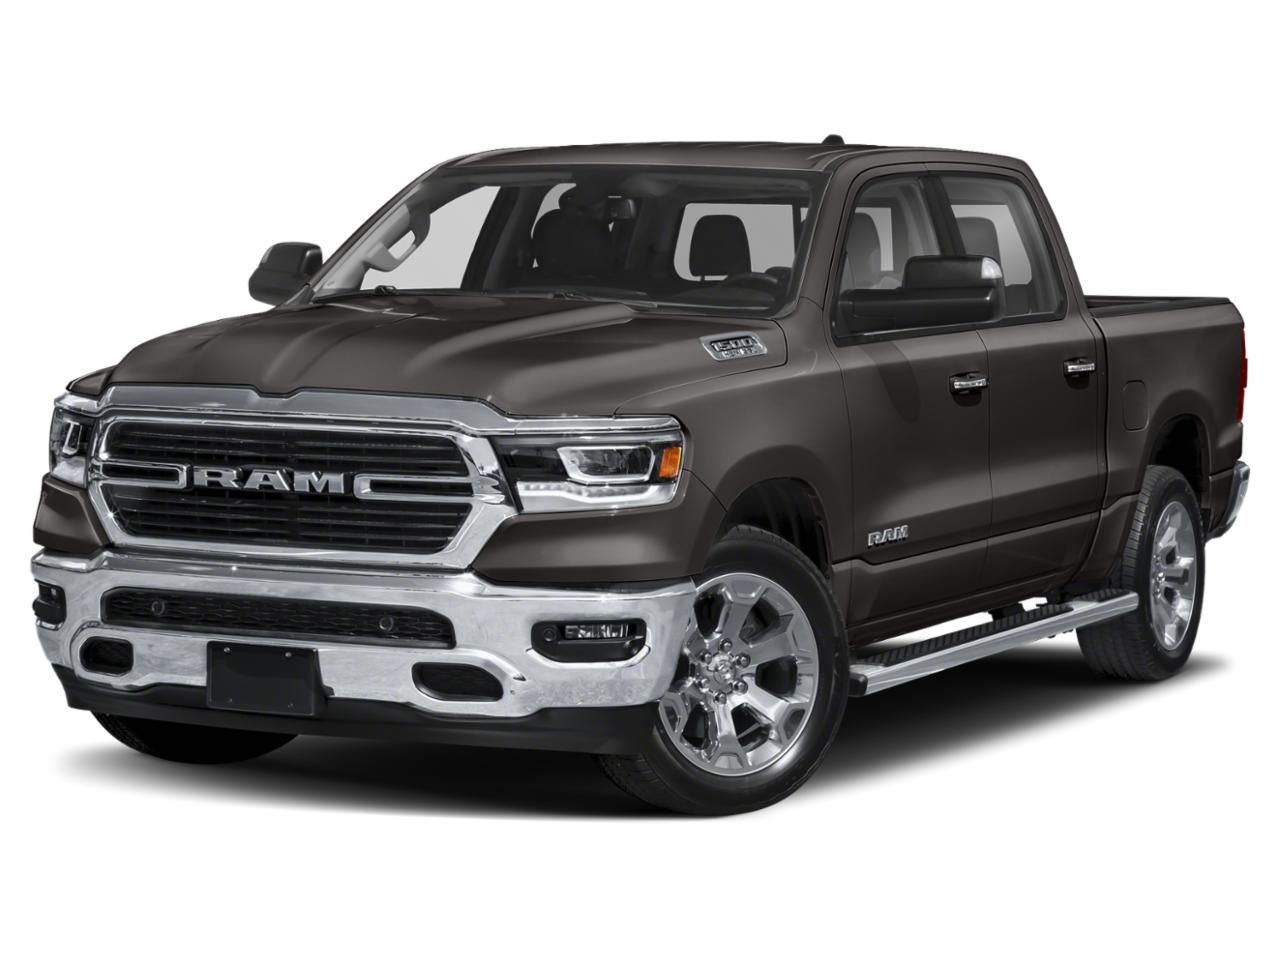 2020 Ram 1500 Vehicle Photo in TEMPLE, TX 76504-3447